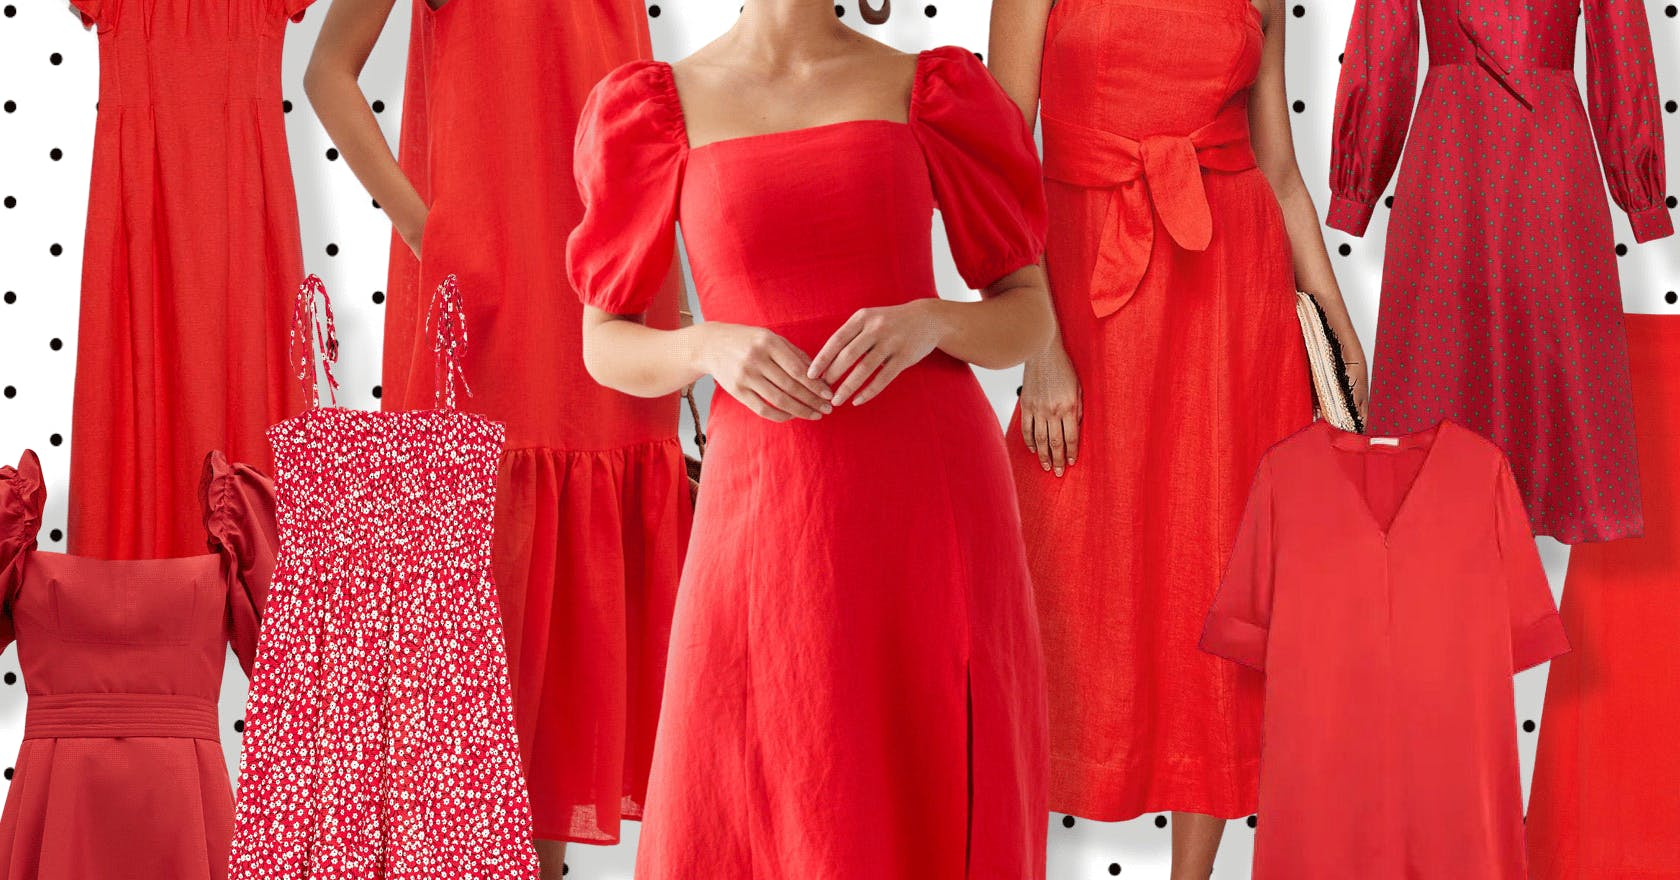 12 of the best red dresses to brighten up your summer wardrobe